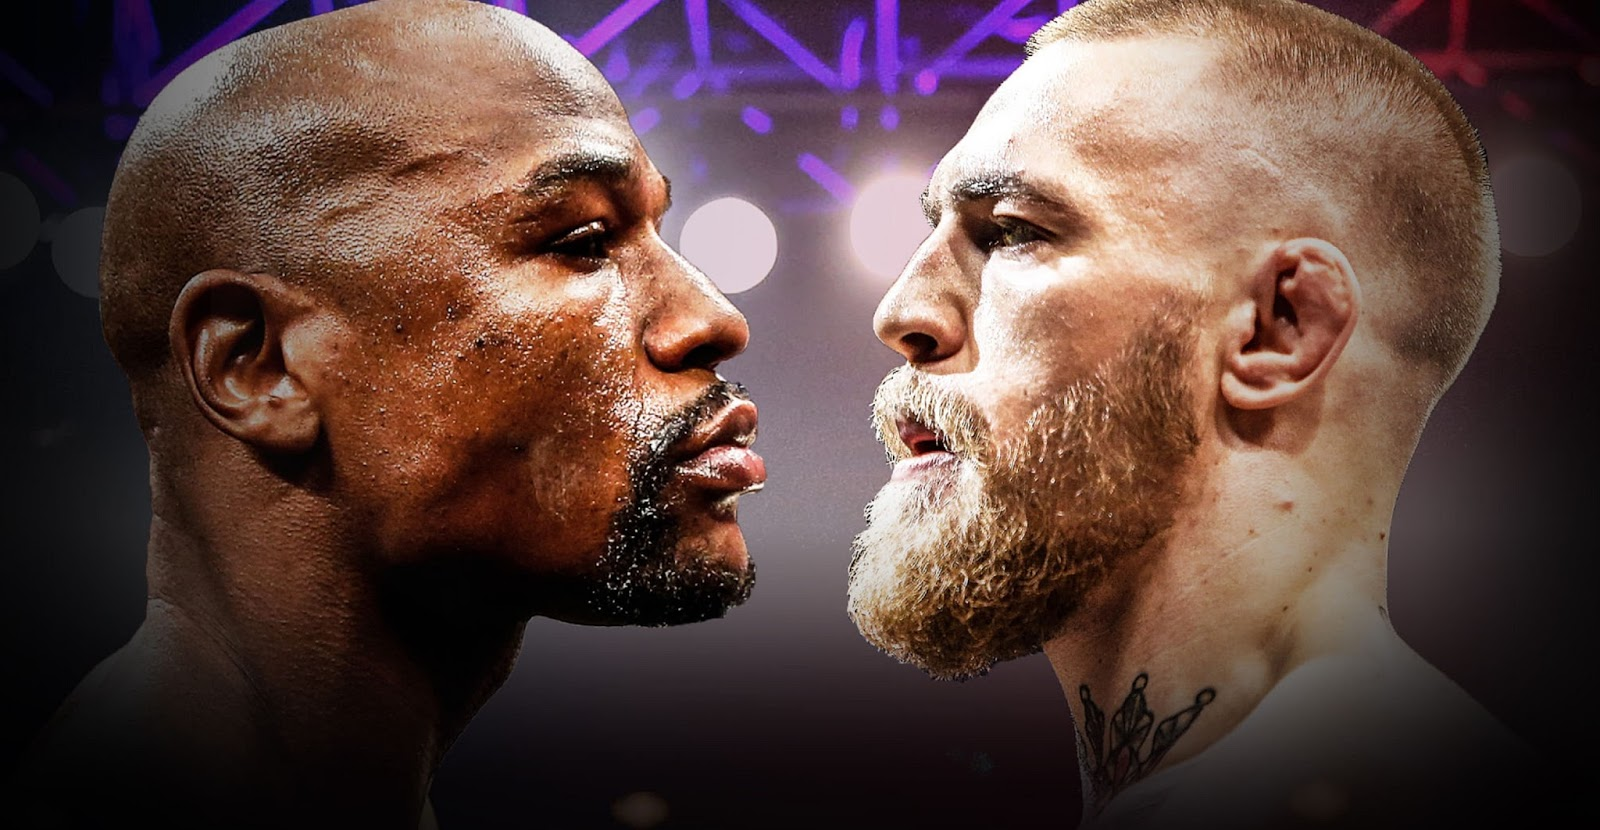 FLOYD MAYWEATHER VS. CONOR MCGREGOR 20